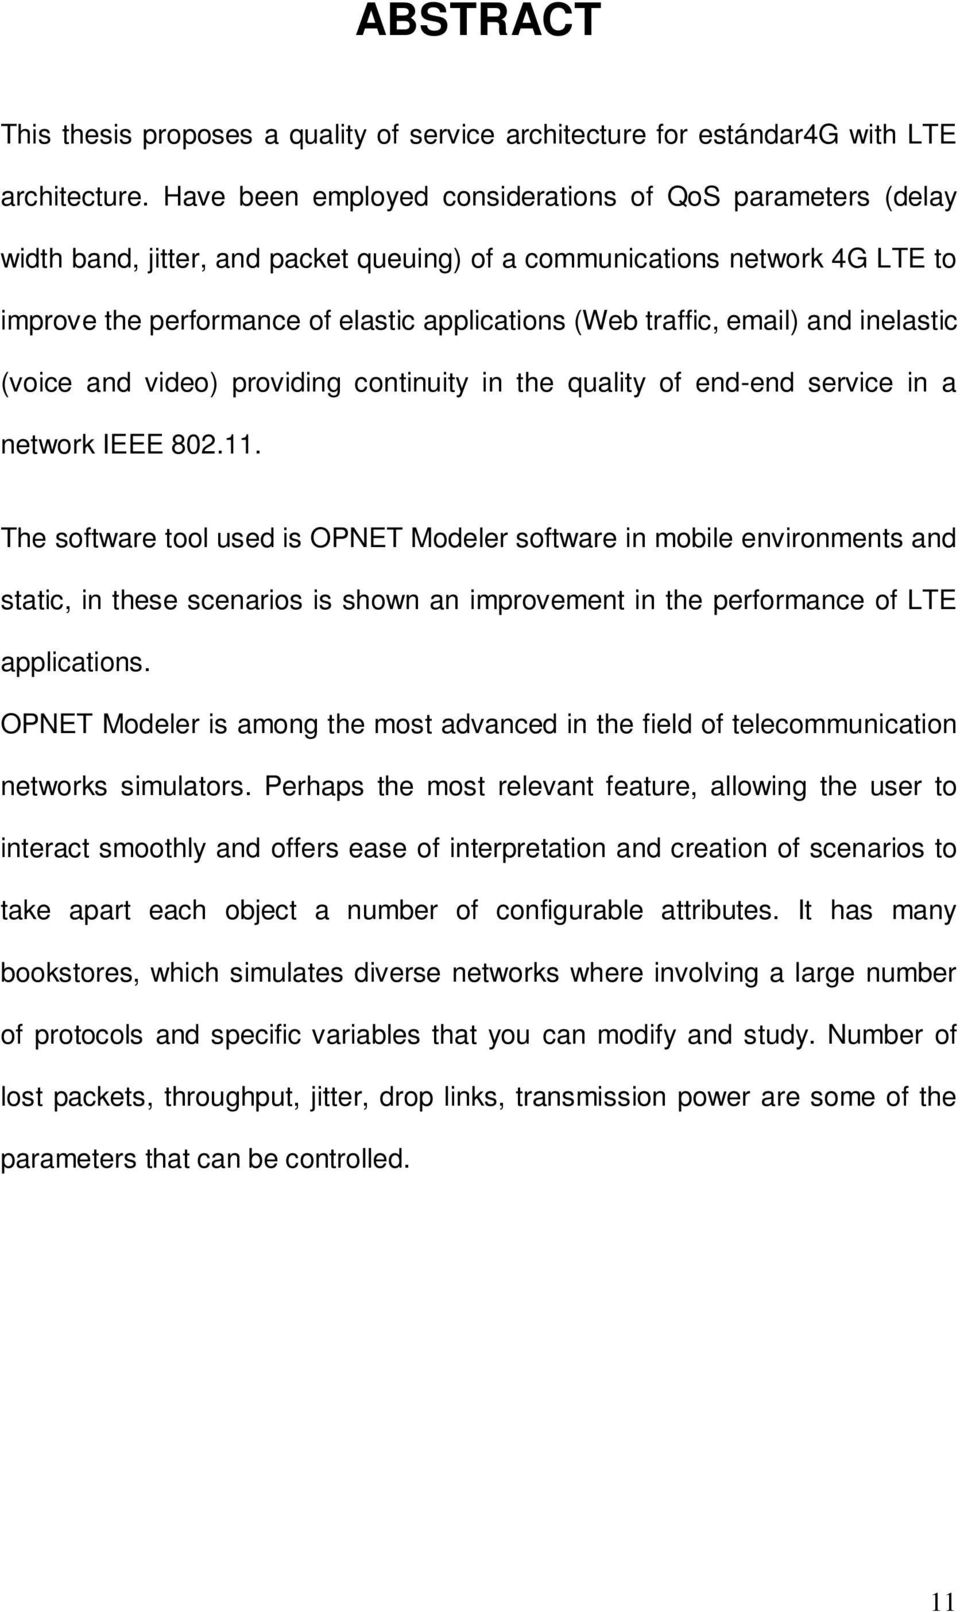 email) and inelastic (voice and video) providing continuity in the quality of end-end service in a network IEEE 802.11.